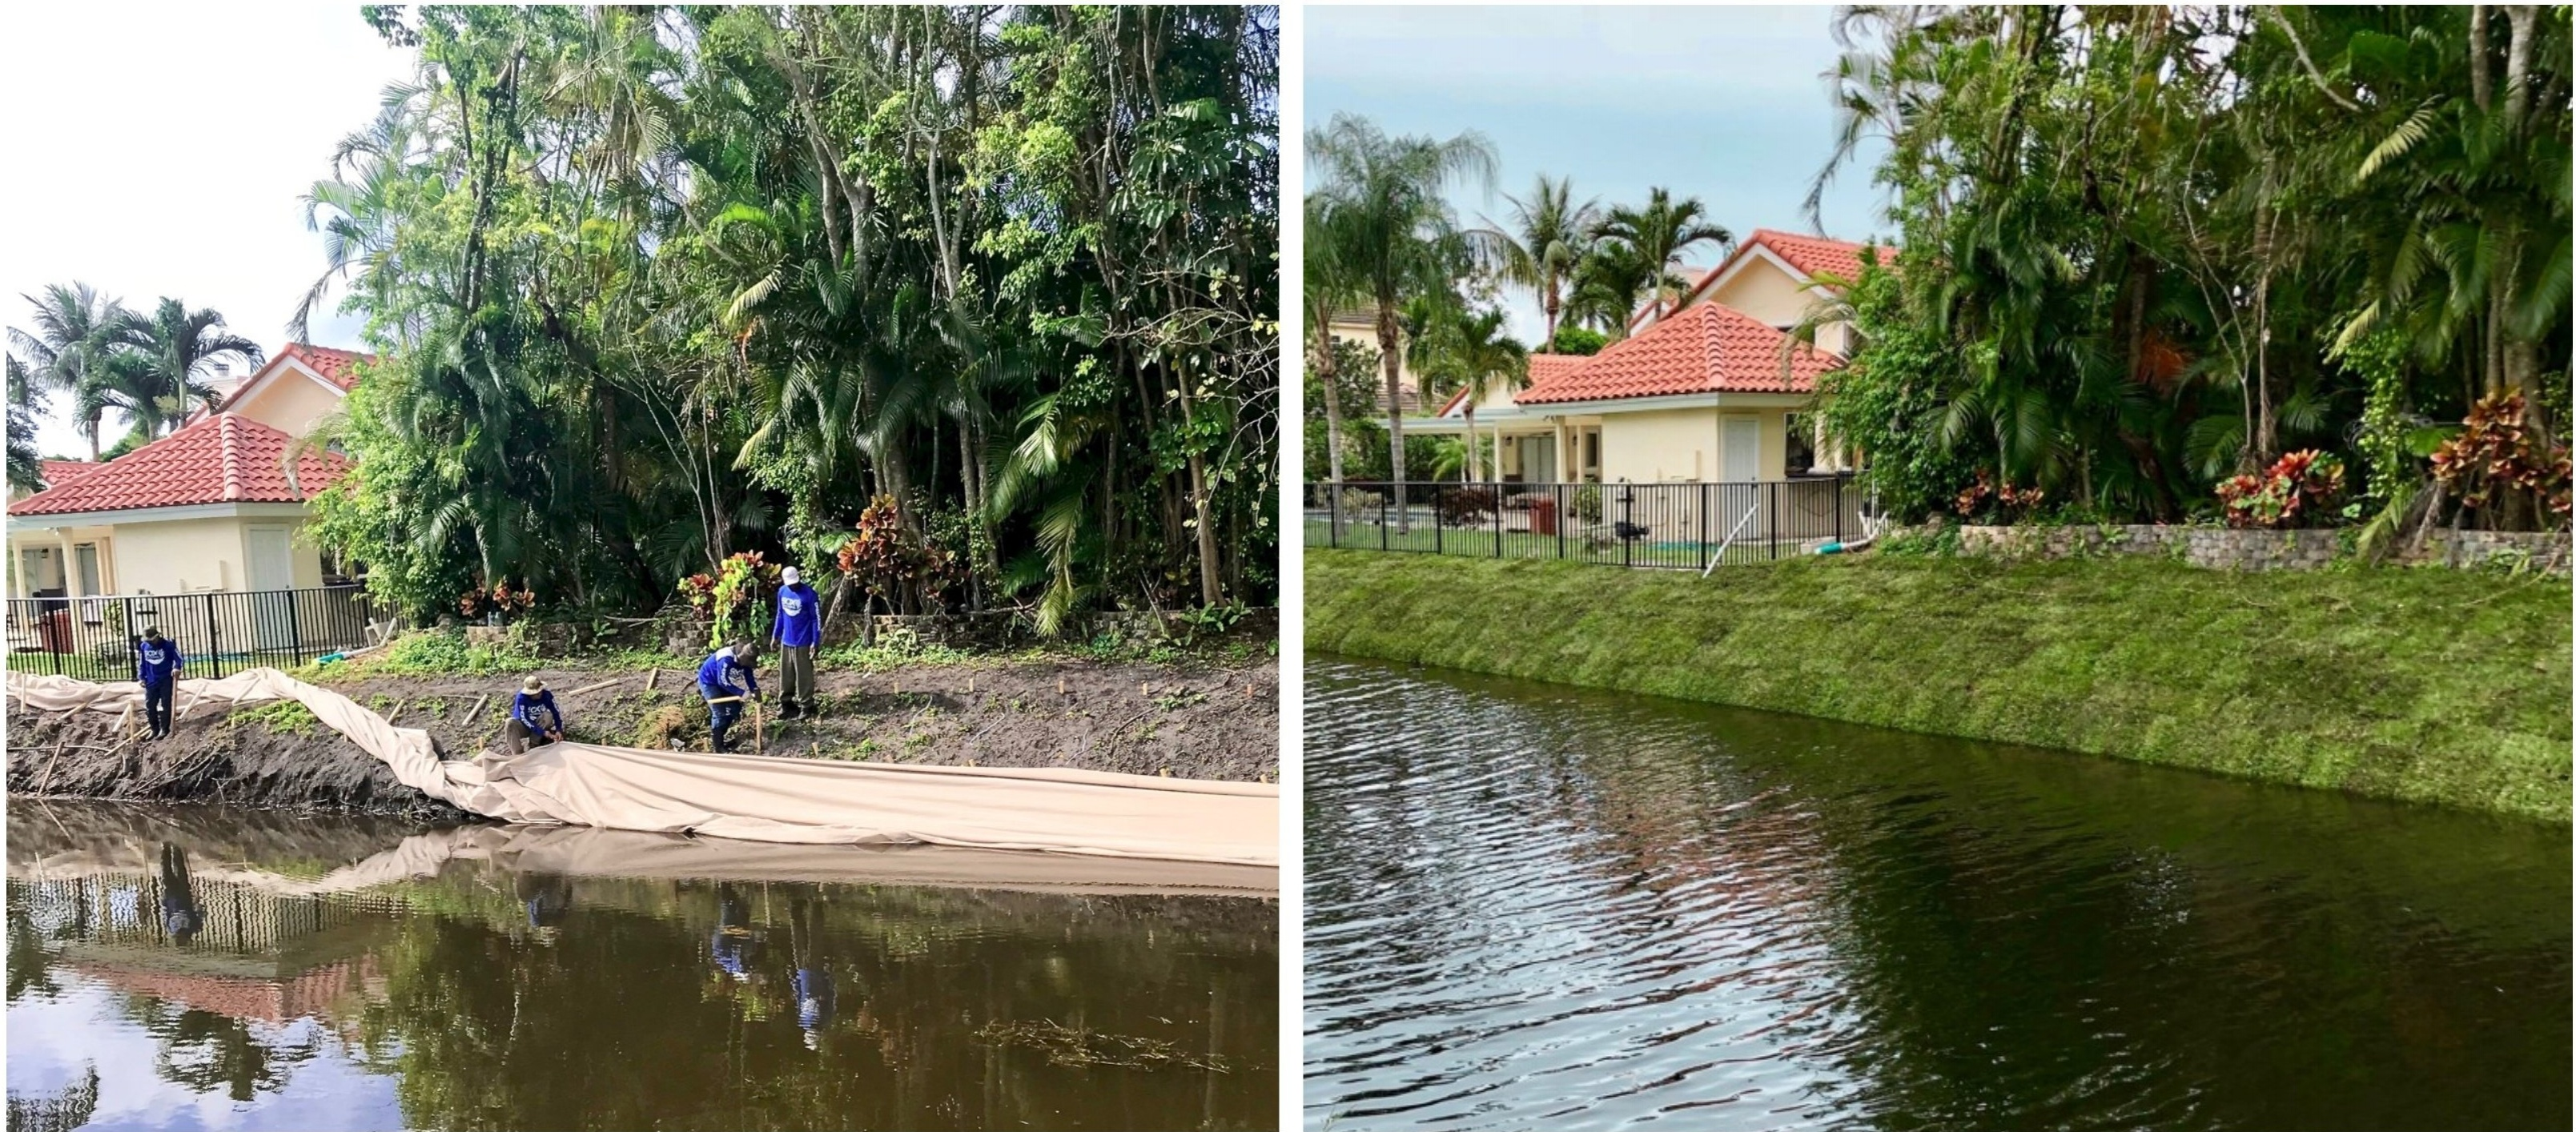 SOX Before and After - Erosion Control in Community Canal